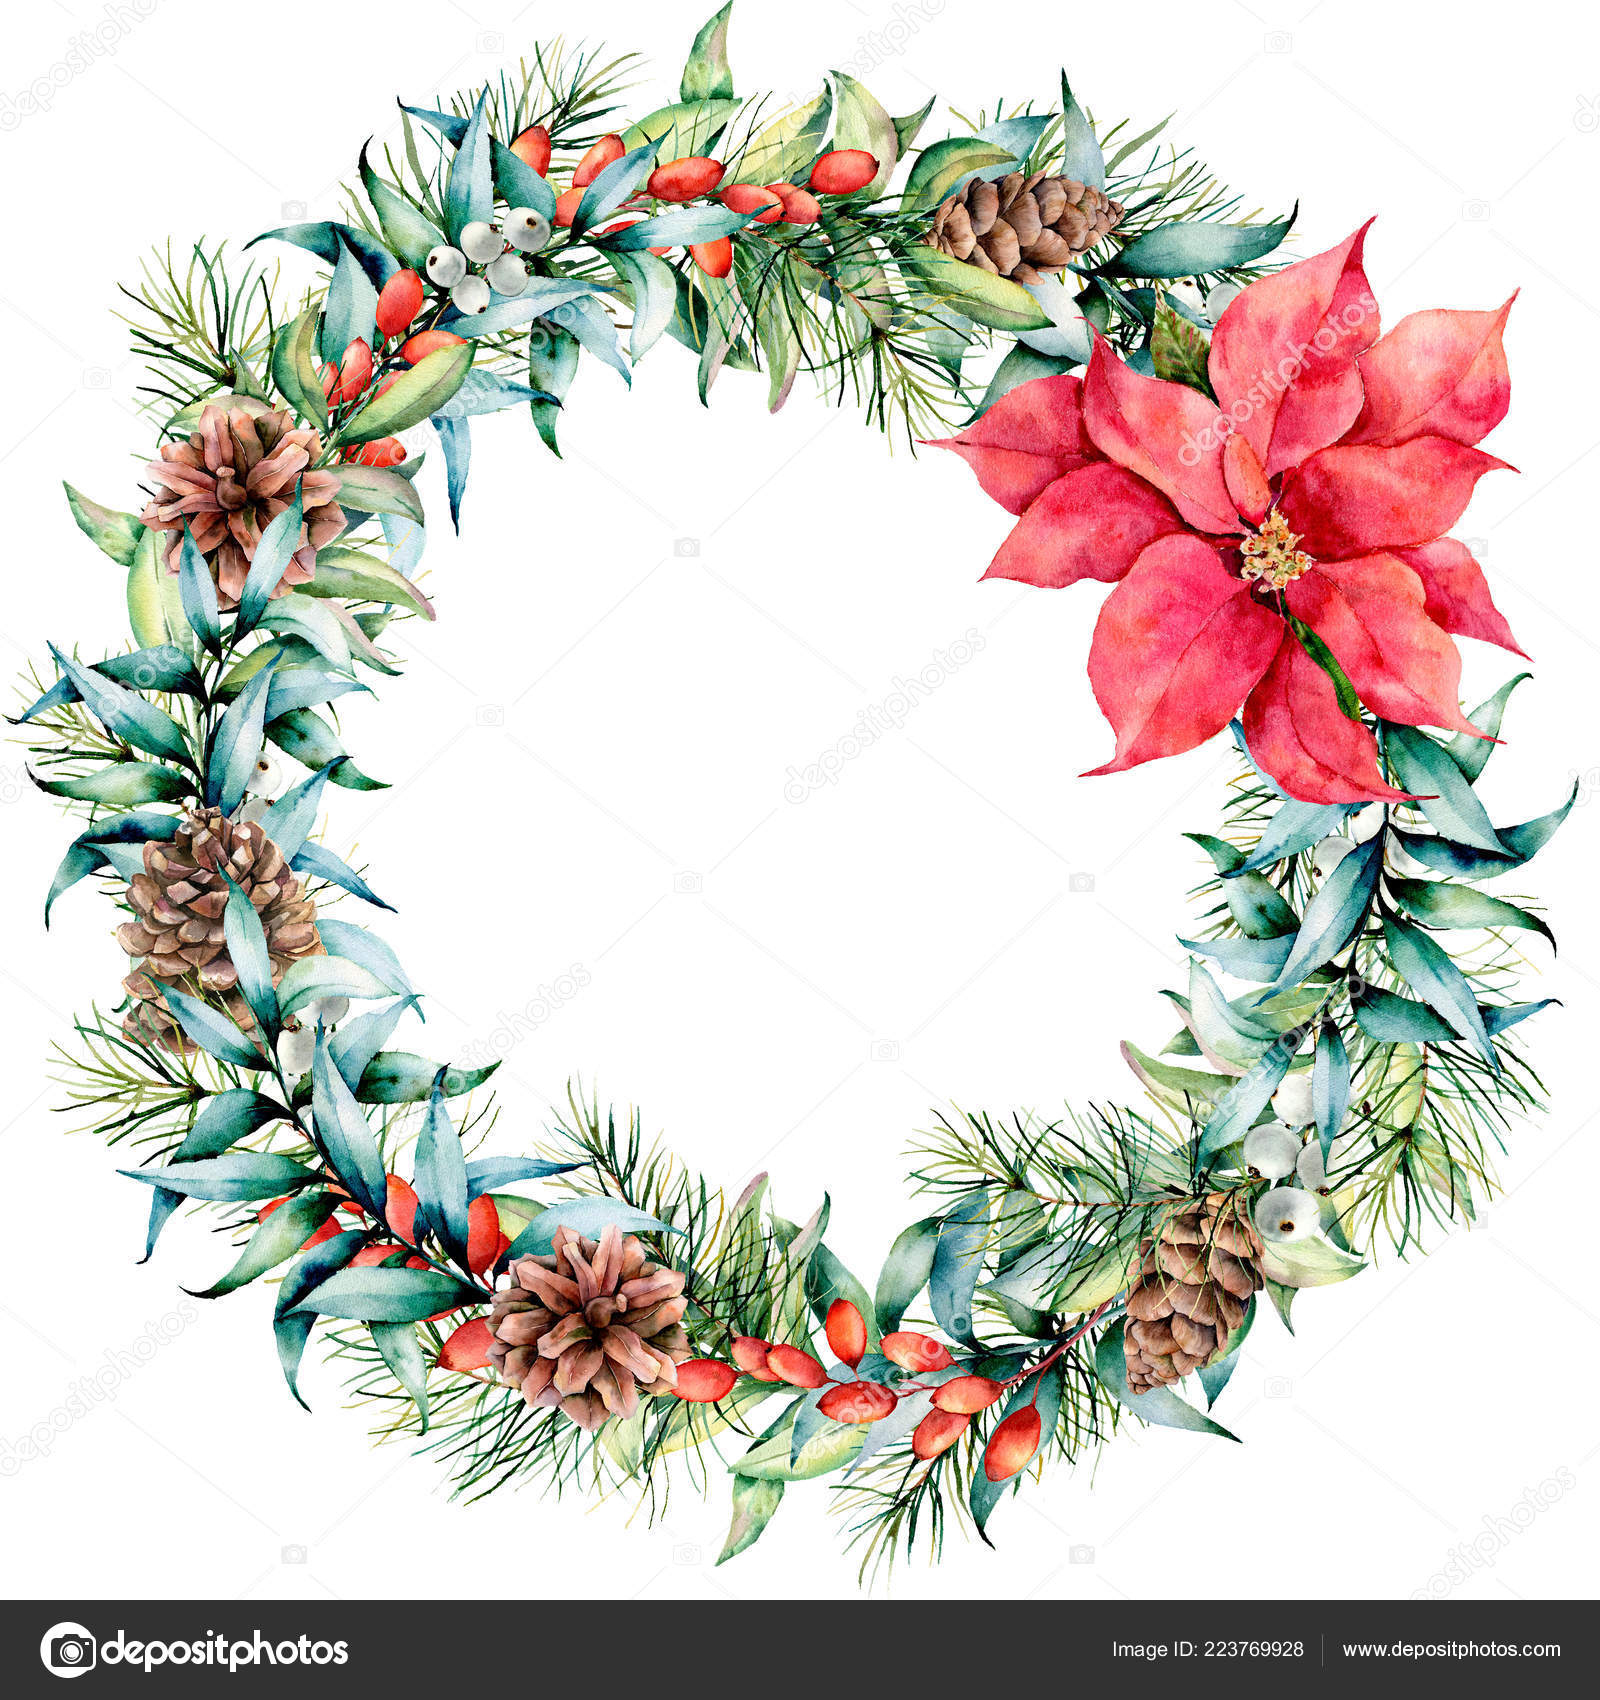 Watercolor Christmas Wreath With Eucalyptus And Poinsettia Hand Painted Fir Border With Cones Berries Eucalyptus Leaves Isolated On White Background Holiday Floral Illustration For Design Print Stock Photo Image By C